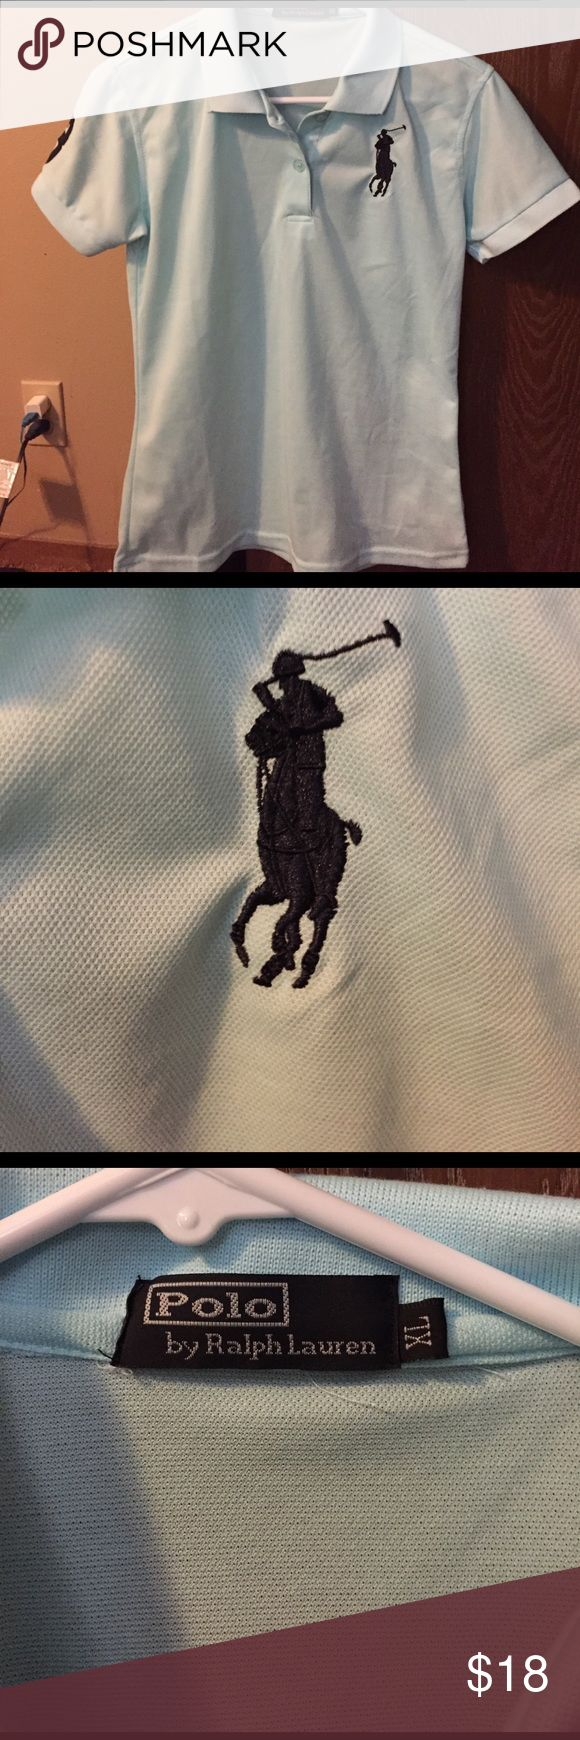 Polo by Ralph Lauren polo shirt Light teal with navy blue polo guy, says xl but fits like a woman's small. Polo by Ralph Lauren Tops Tees - Short Sleeve